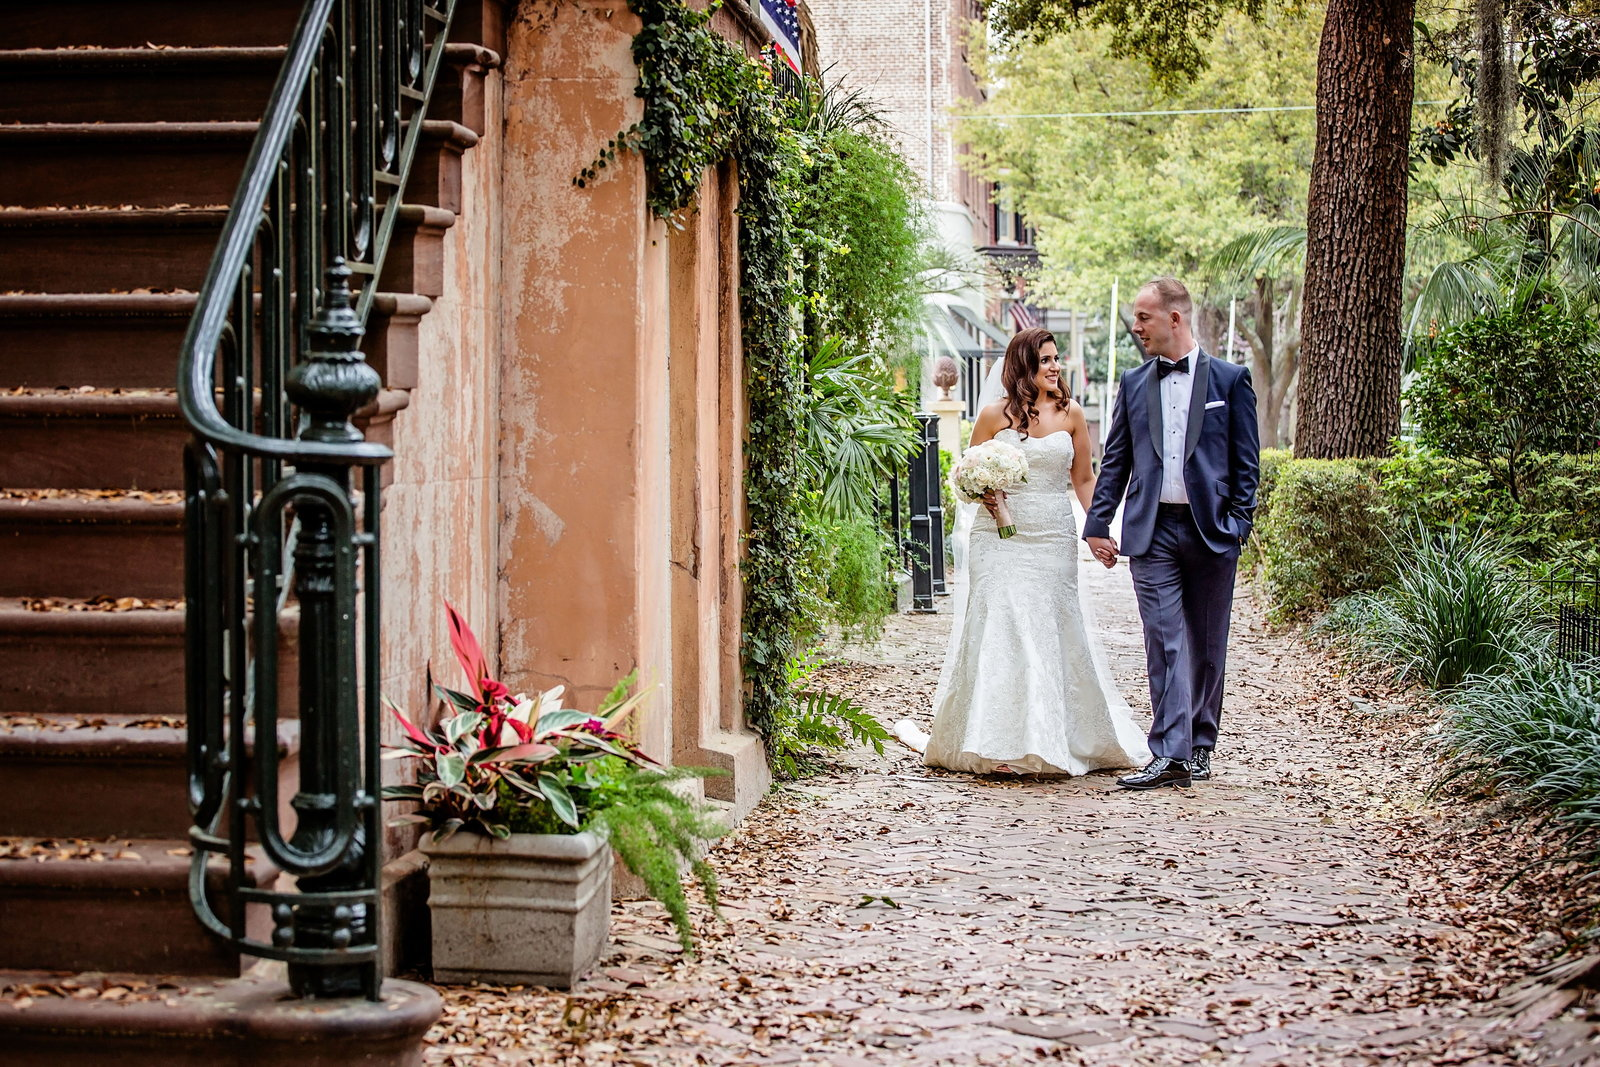 Savannah Wedding Photography, Bobbi Brinkman Photography